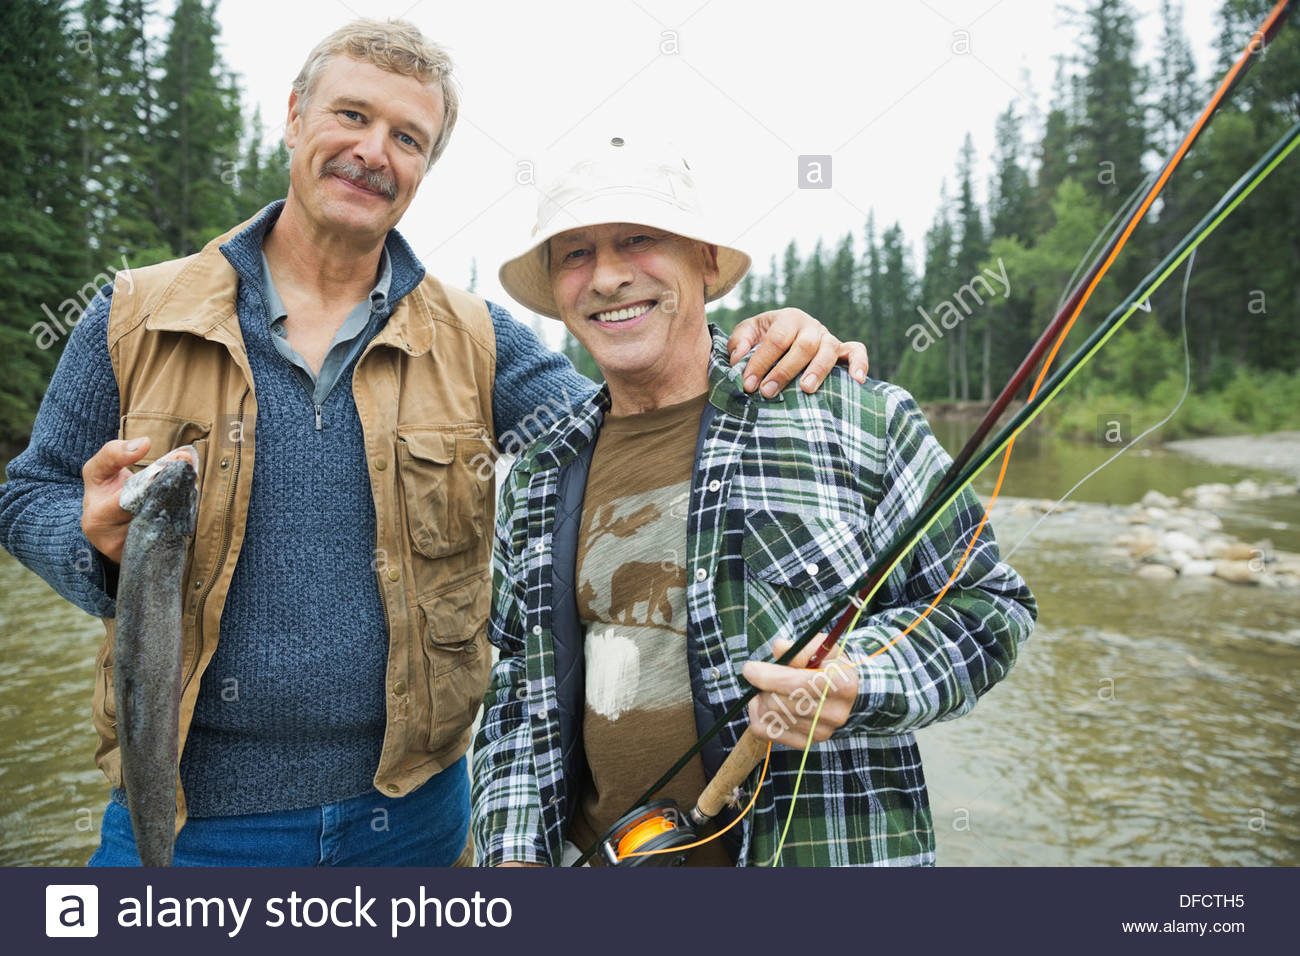 Portrait of men fishing together - Stock Image